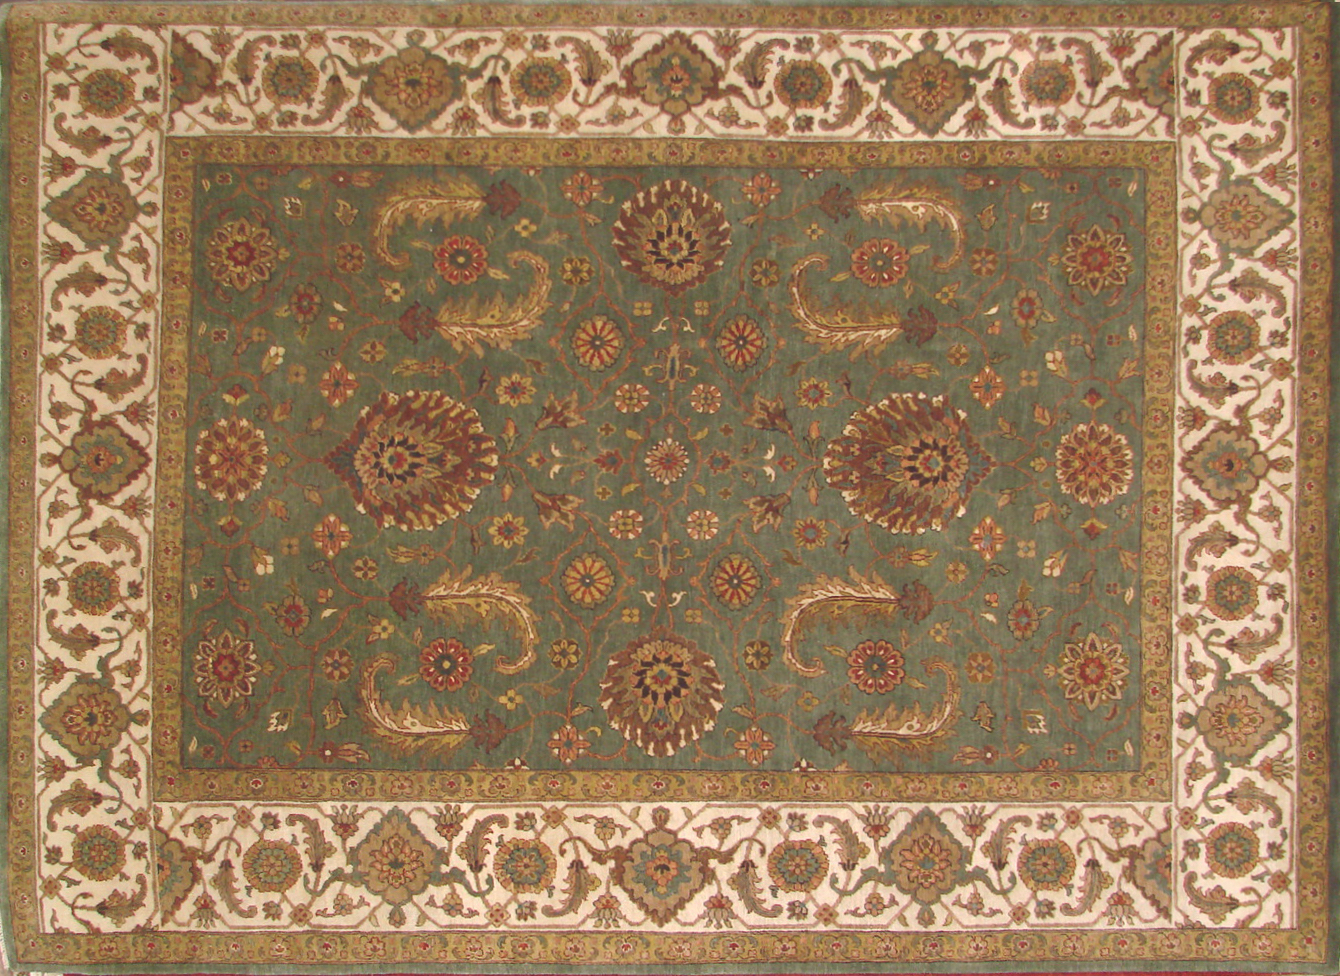 8x10 Antique Revival Hand Knotted Wool Area Rug - MR19913